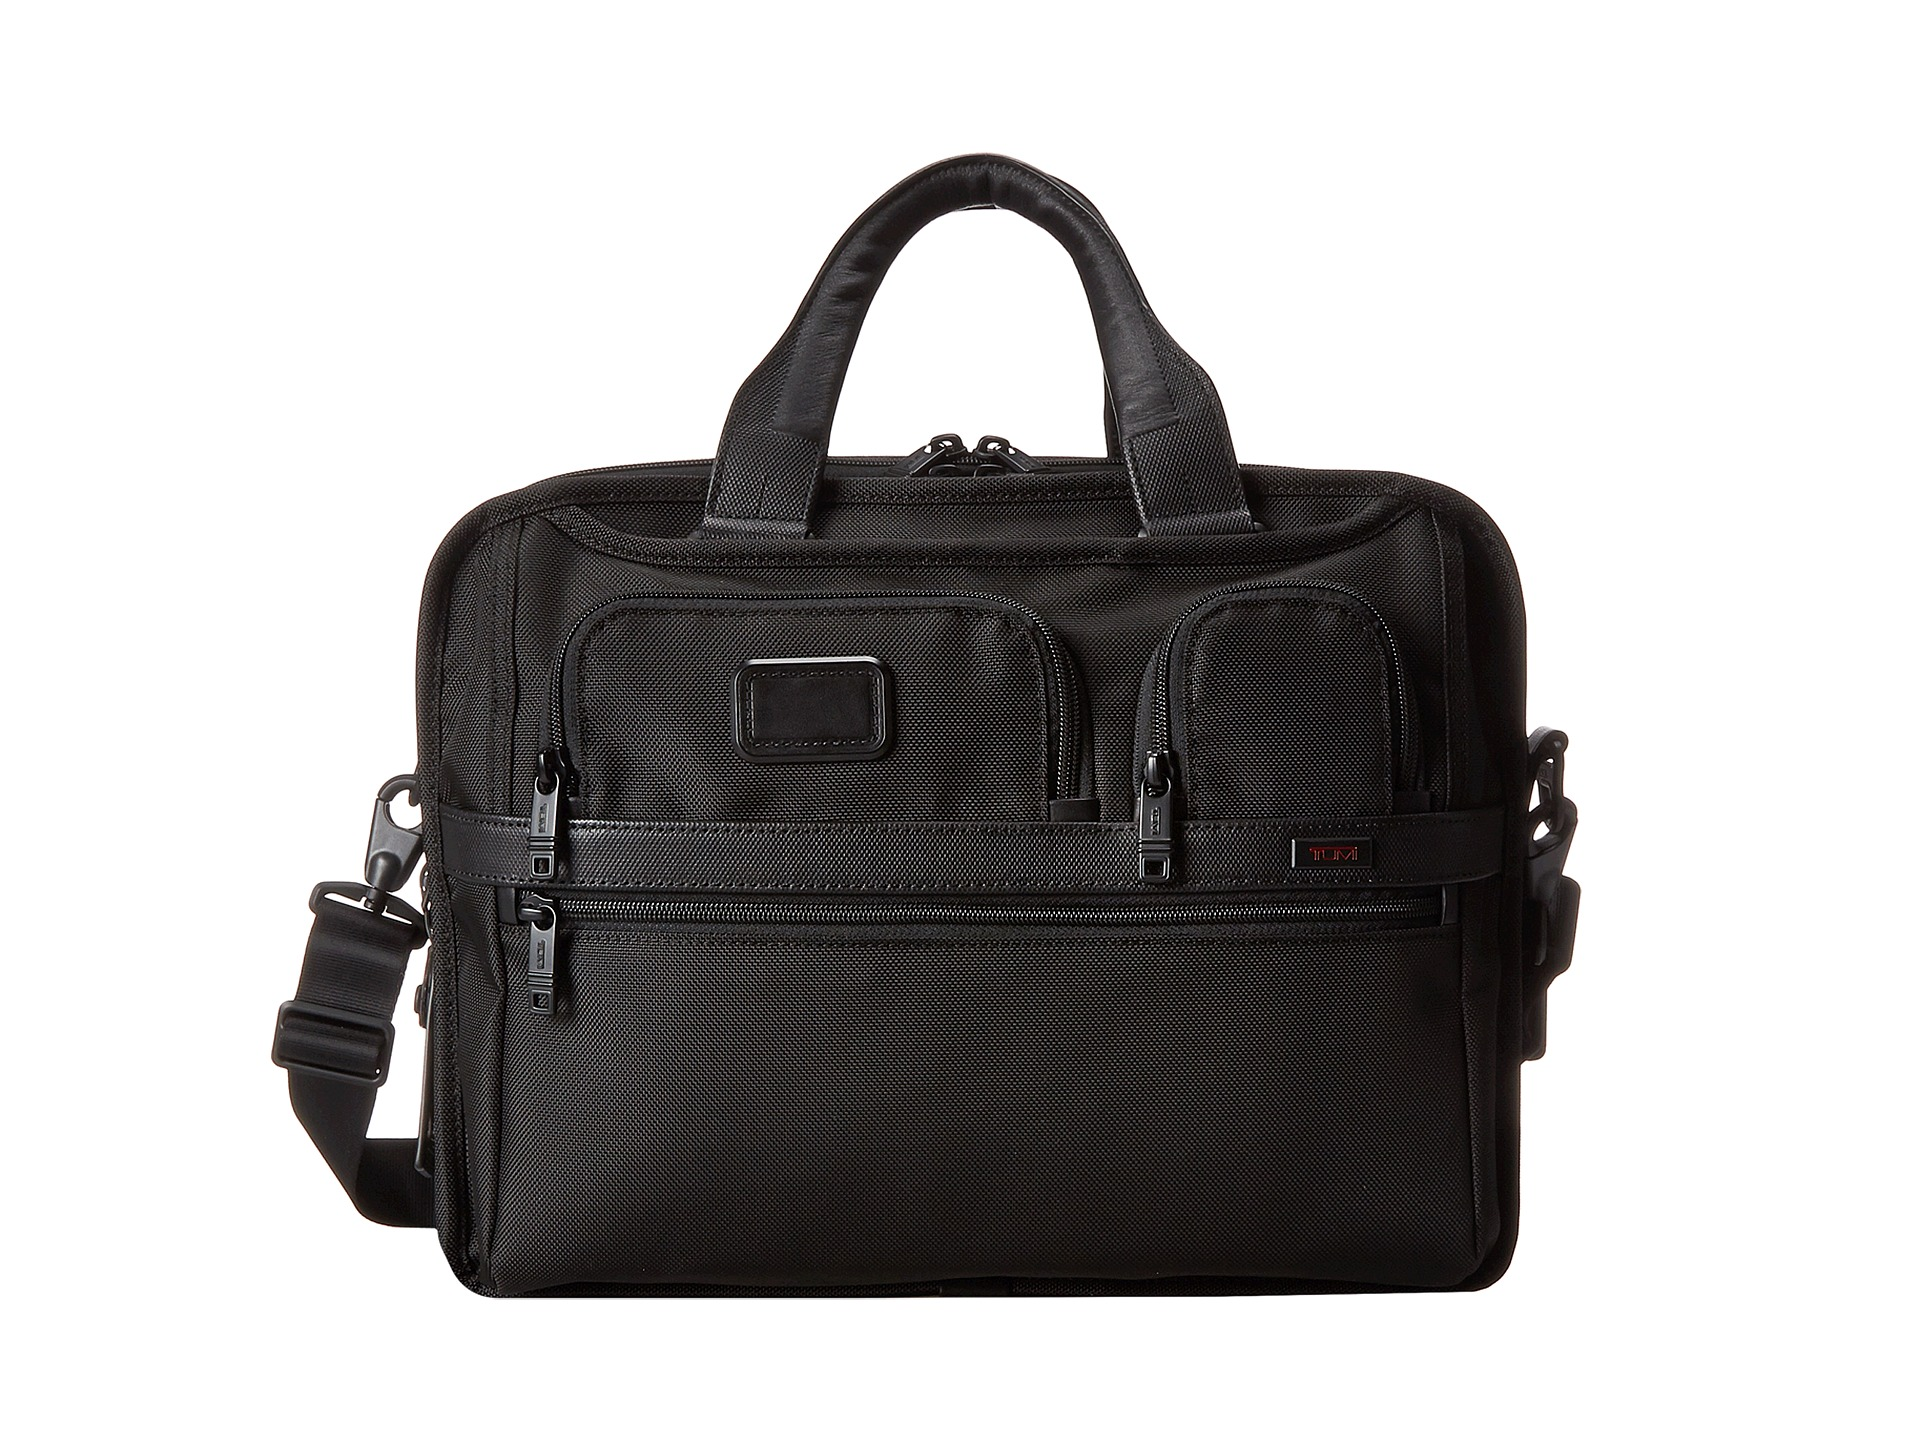 Model Tumis Womens Collections Take  Beacon Hills Allleather Business And Day Bag Collection Introduces Ballistic Nylon And A Coated Cotton Material With Leather Trim Details Standout Styles Include The Branch Slim Laptop Brief And The